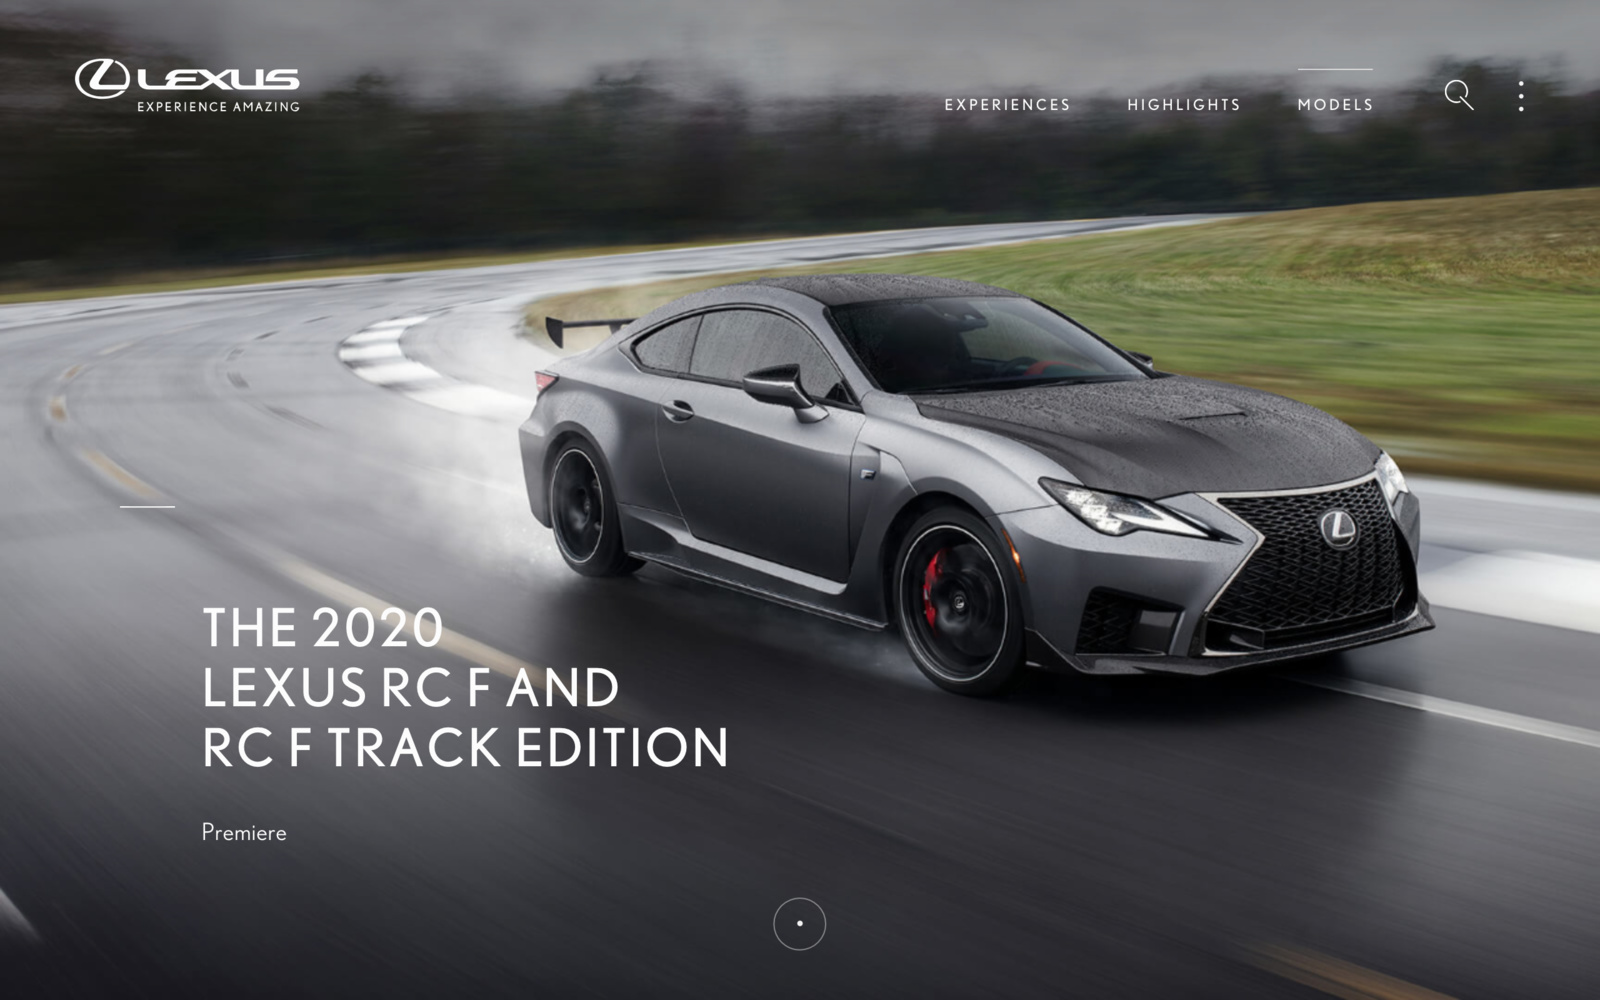 Discover the Global World of Lexus